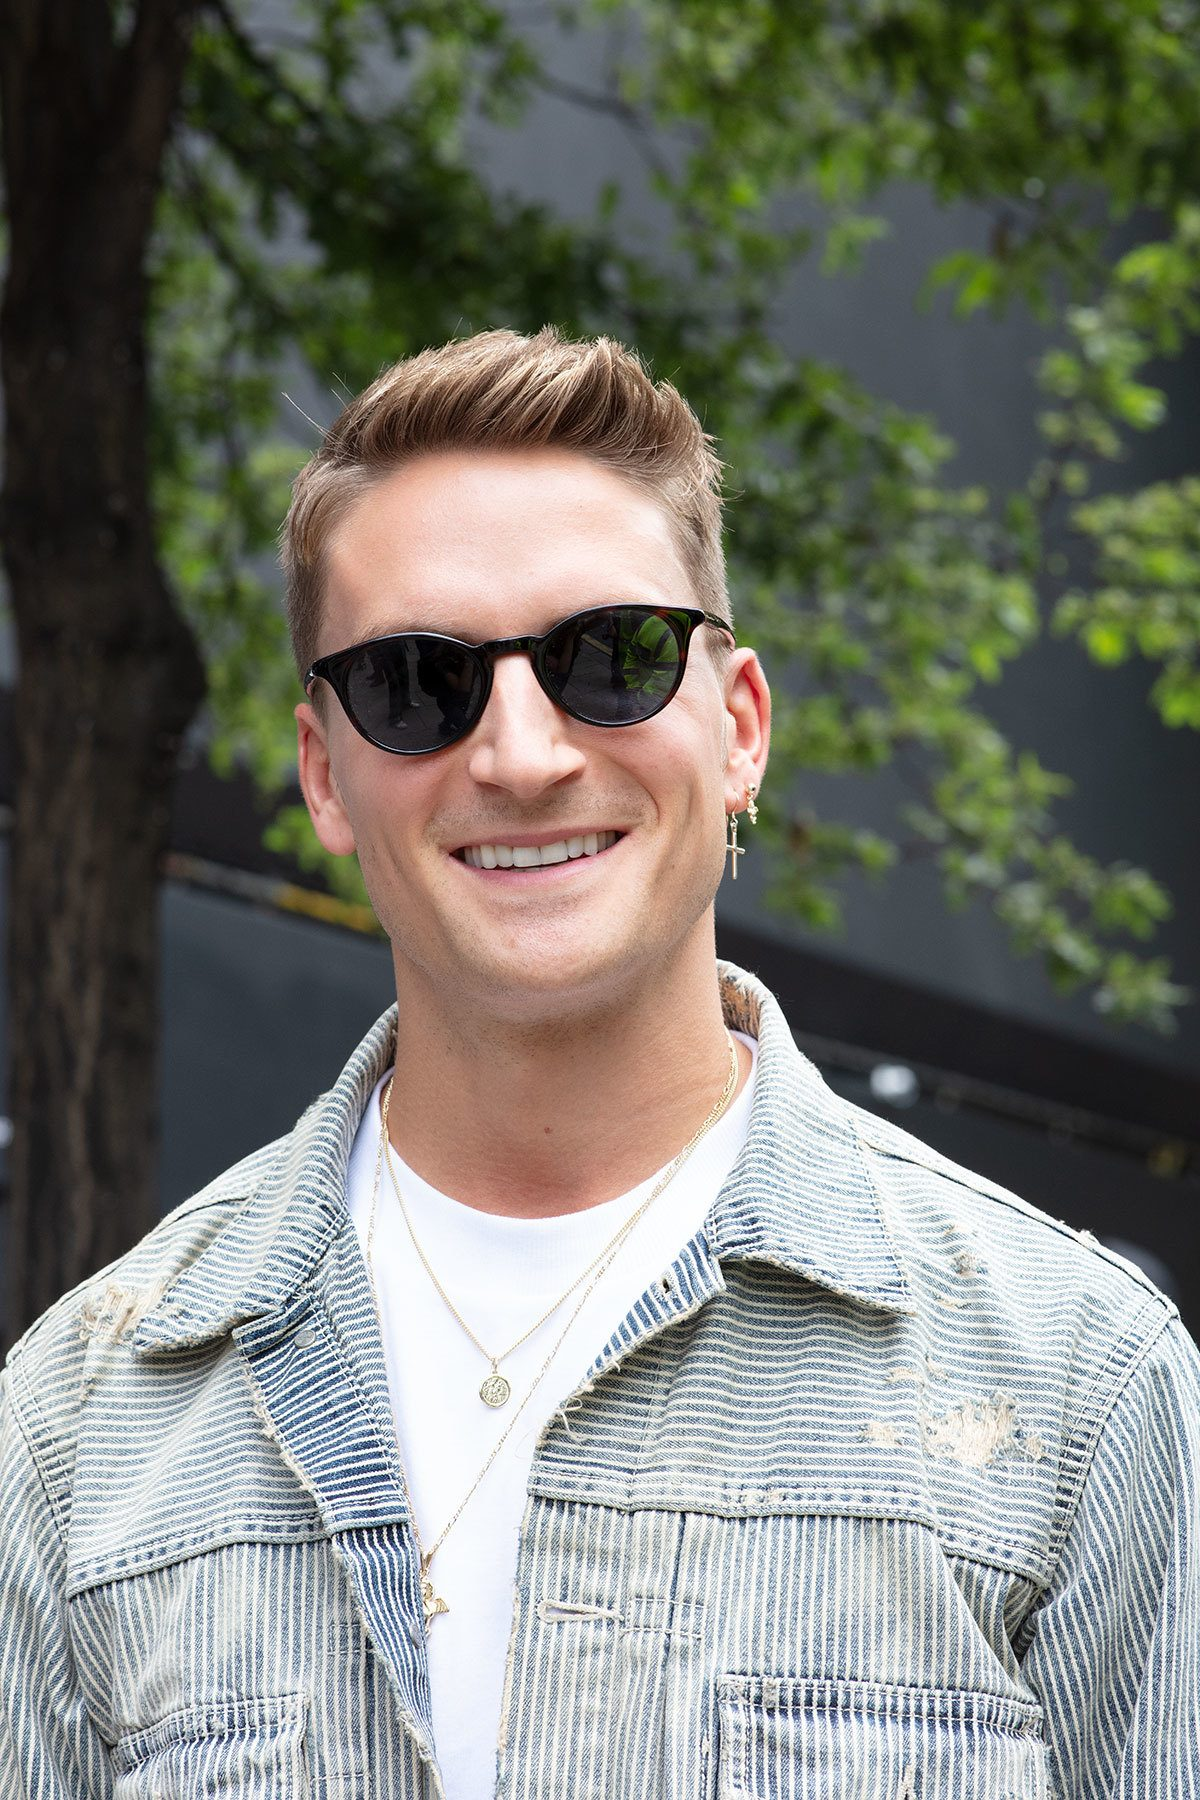 London fashion week men's ss19: close up shot of man with relaxed quiff hairstyle, wearing denim jacket and white shirt, sunglasses and posing on the sreet